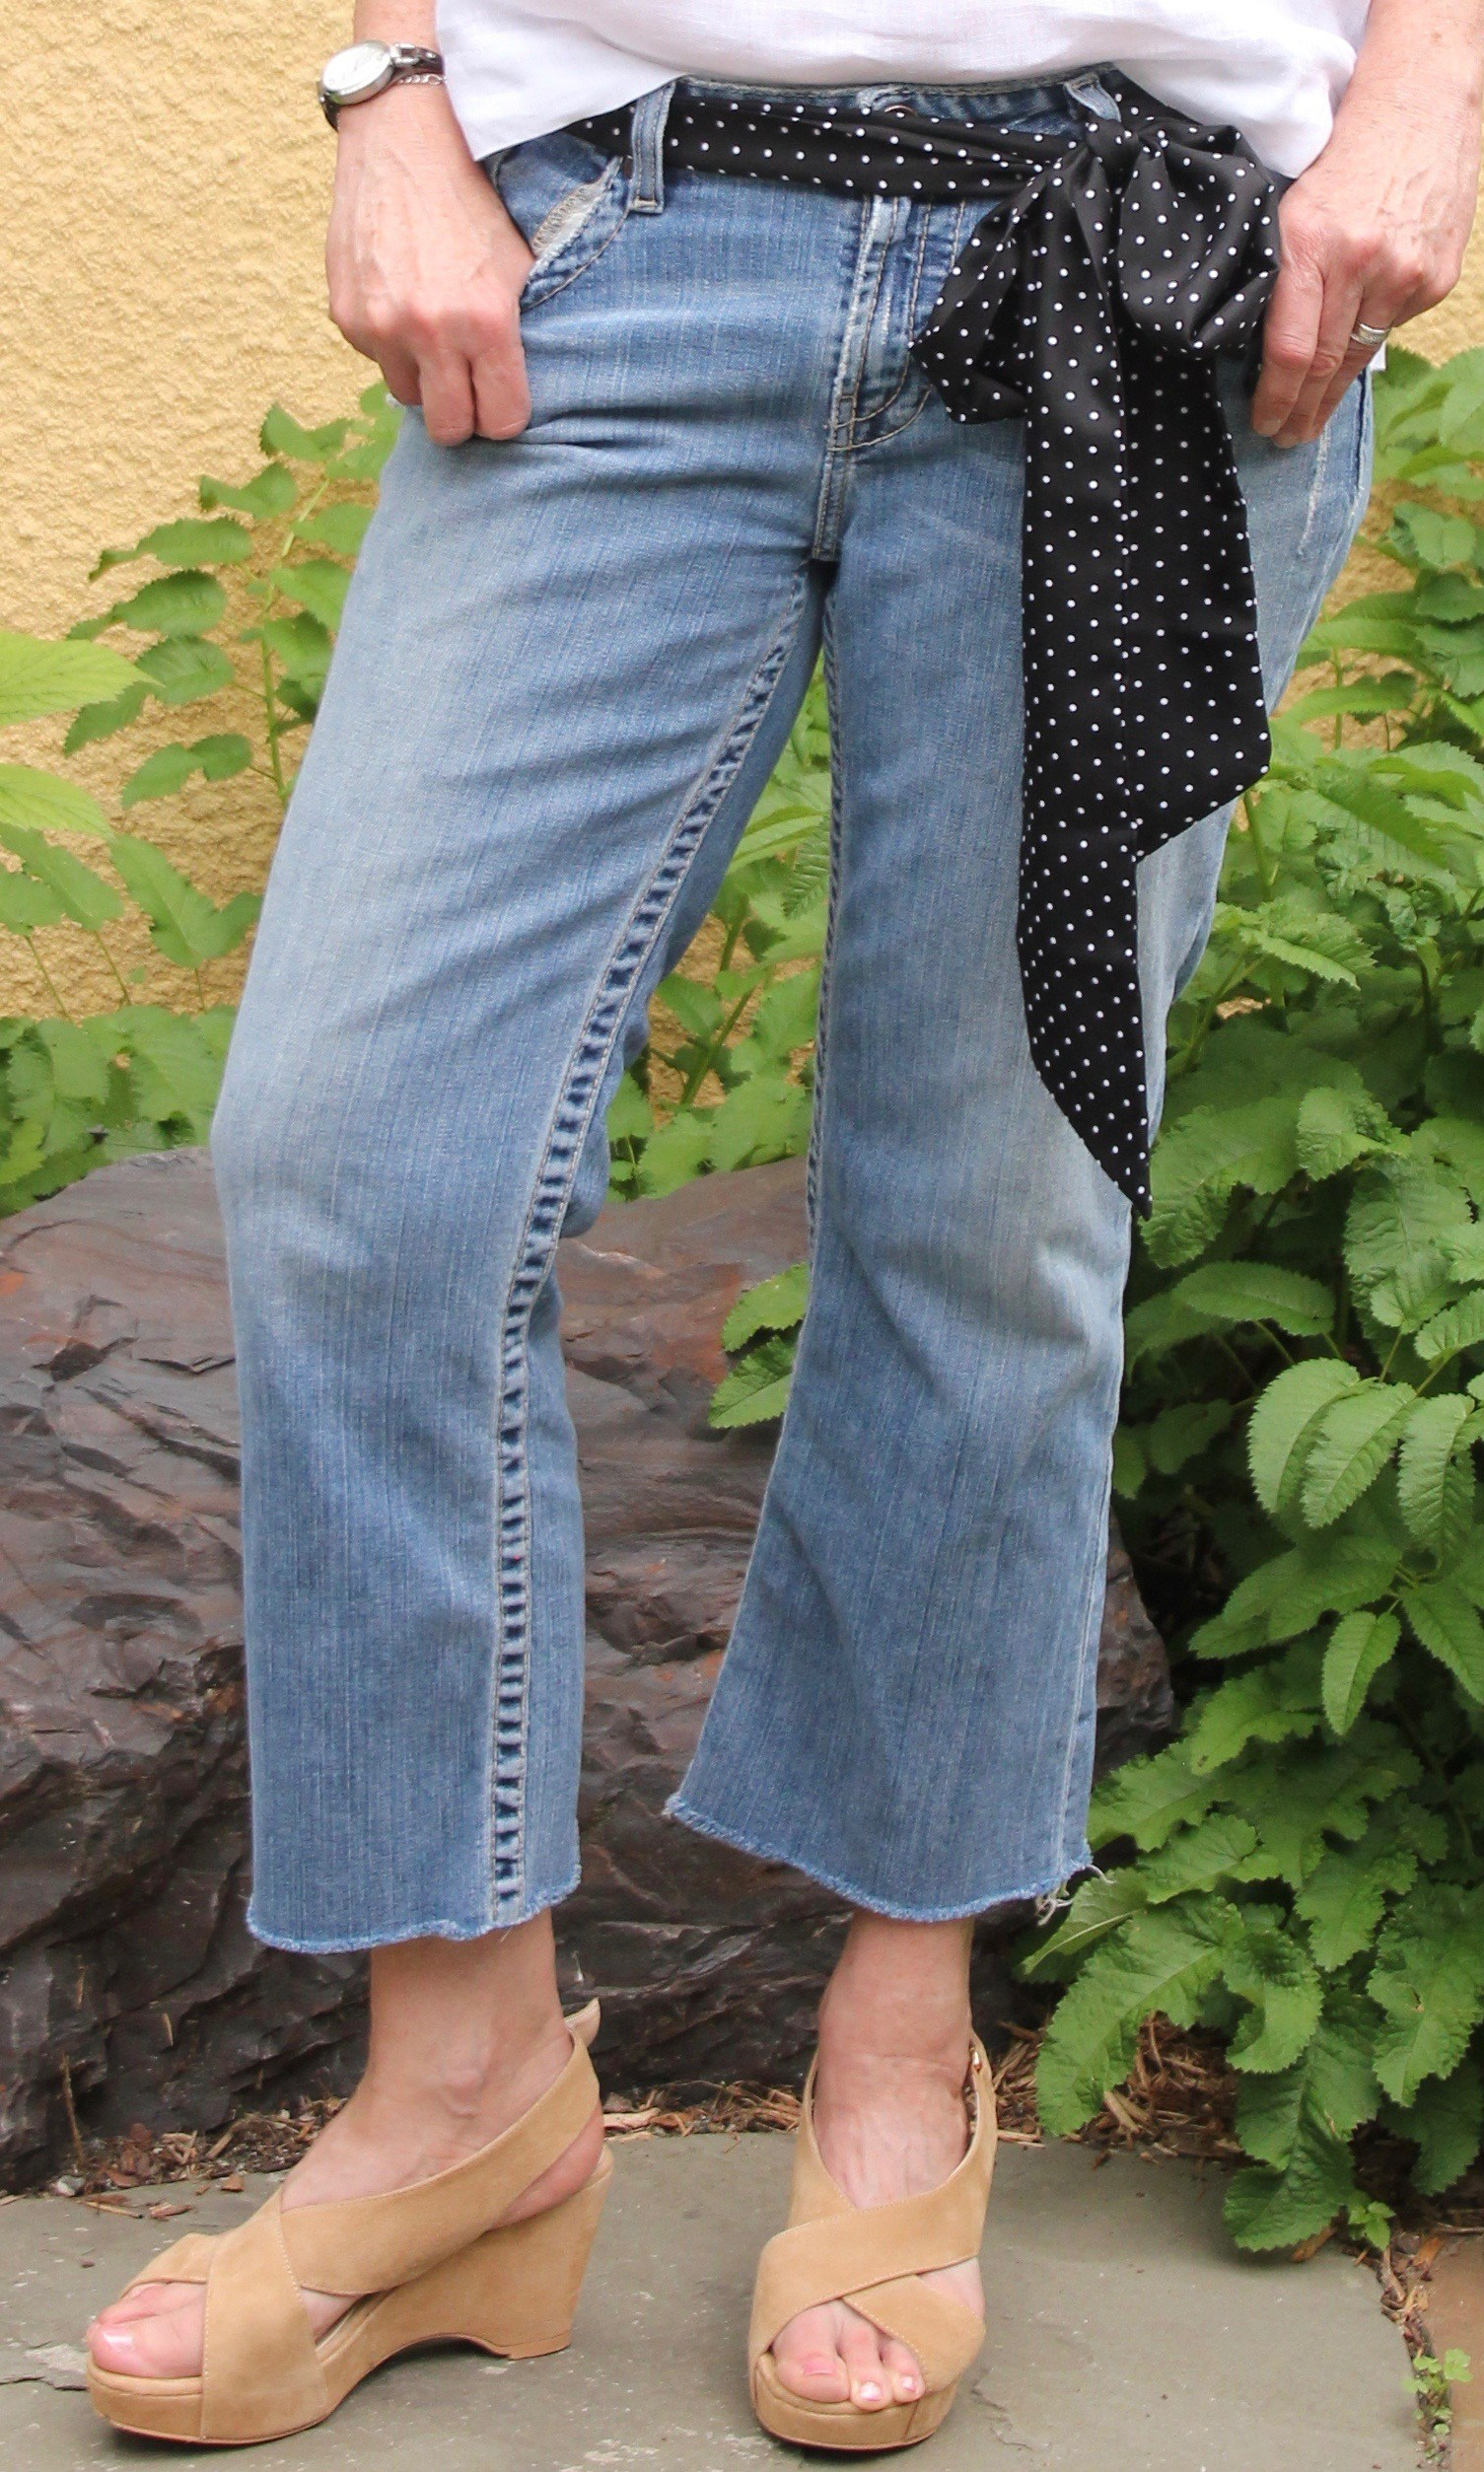 ndwc_linen-top_cropped-jeans_shoes.jpg